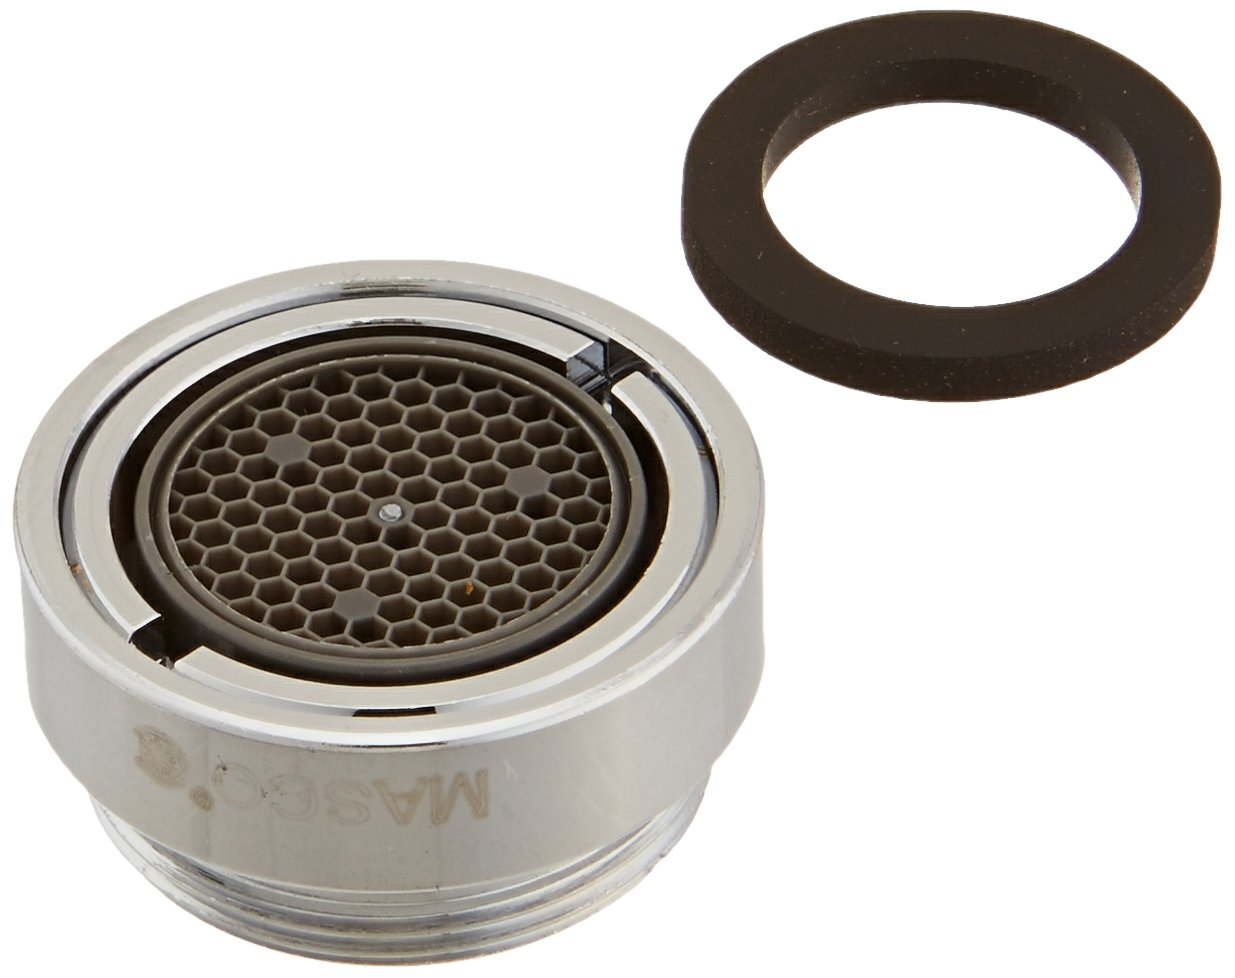 Delta Faucet RP246 Aerator for 2.0 GPM Vandal Proof, Chrome - Faucet ...